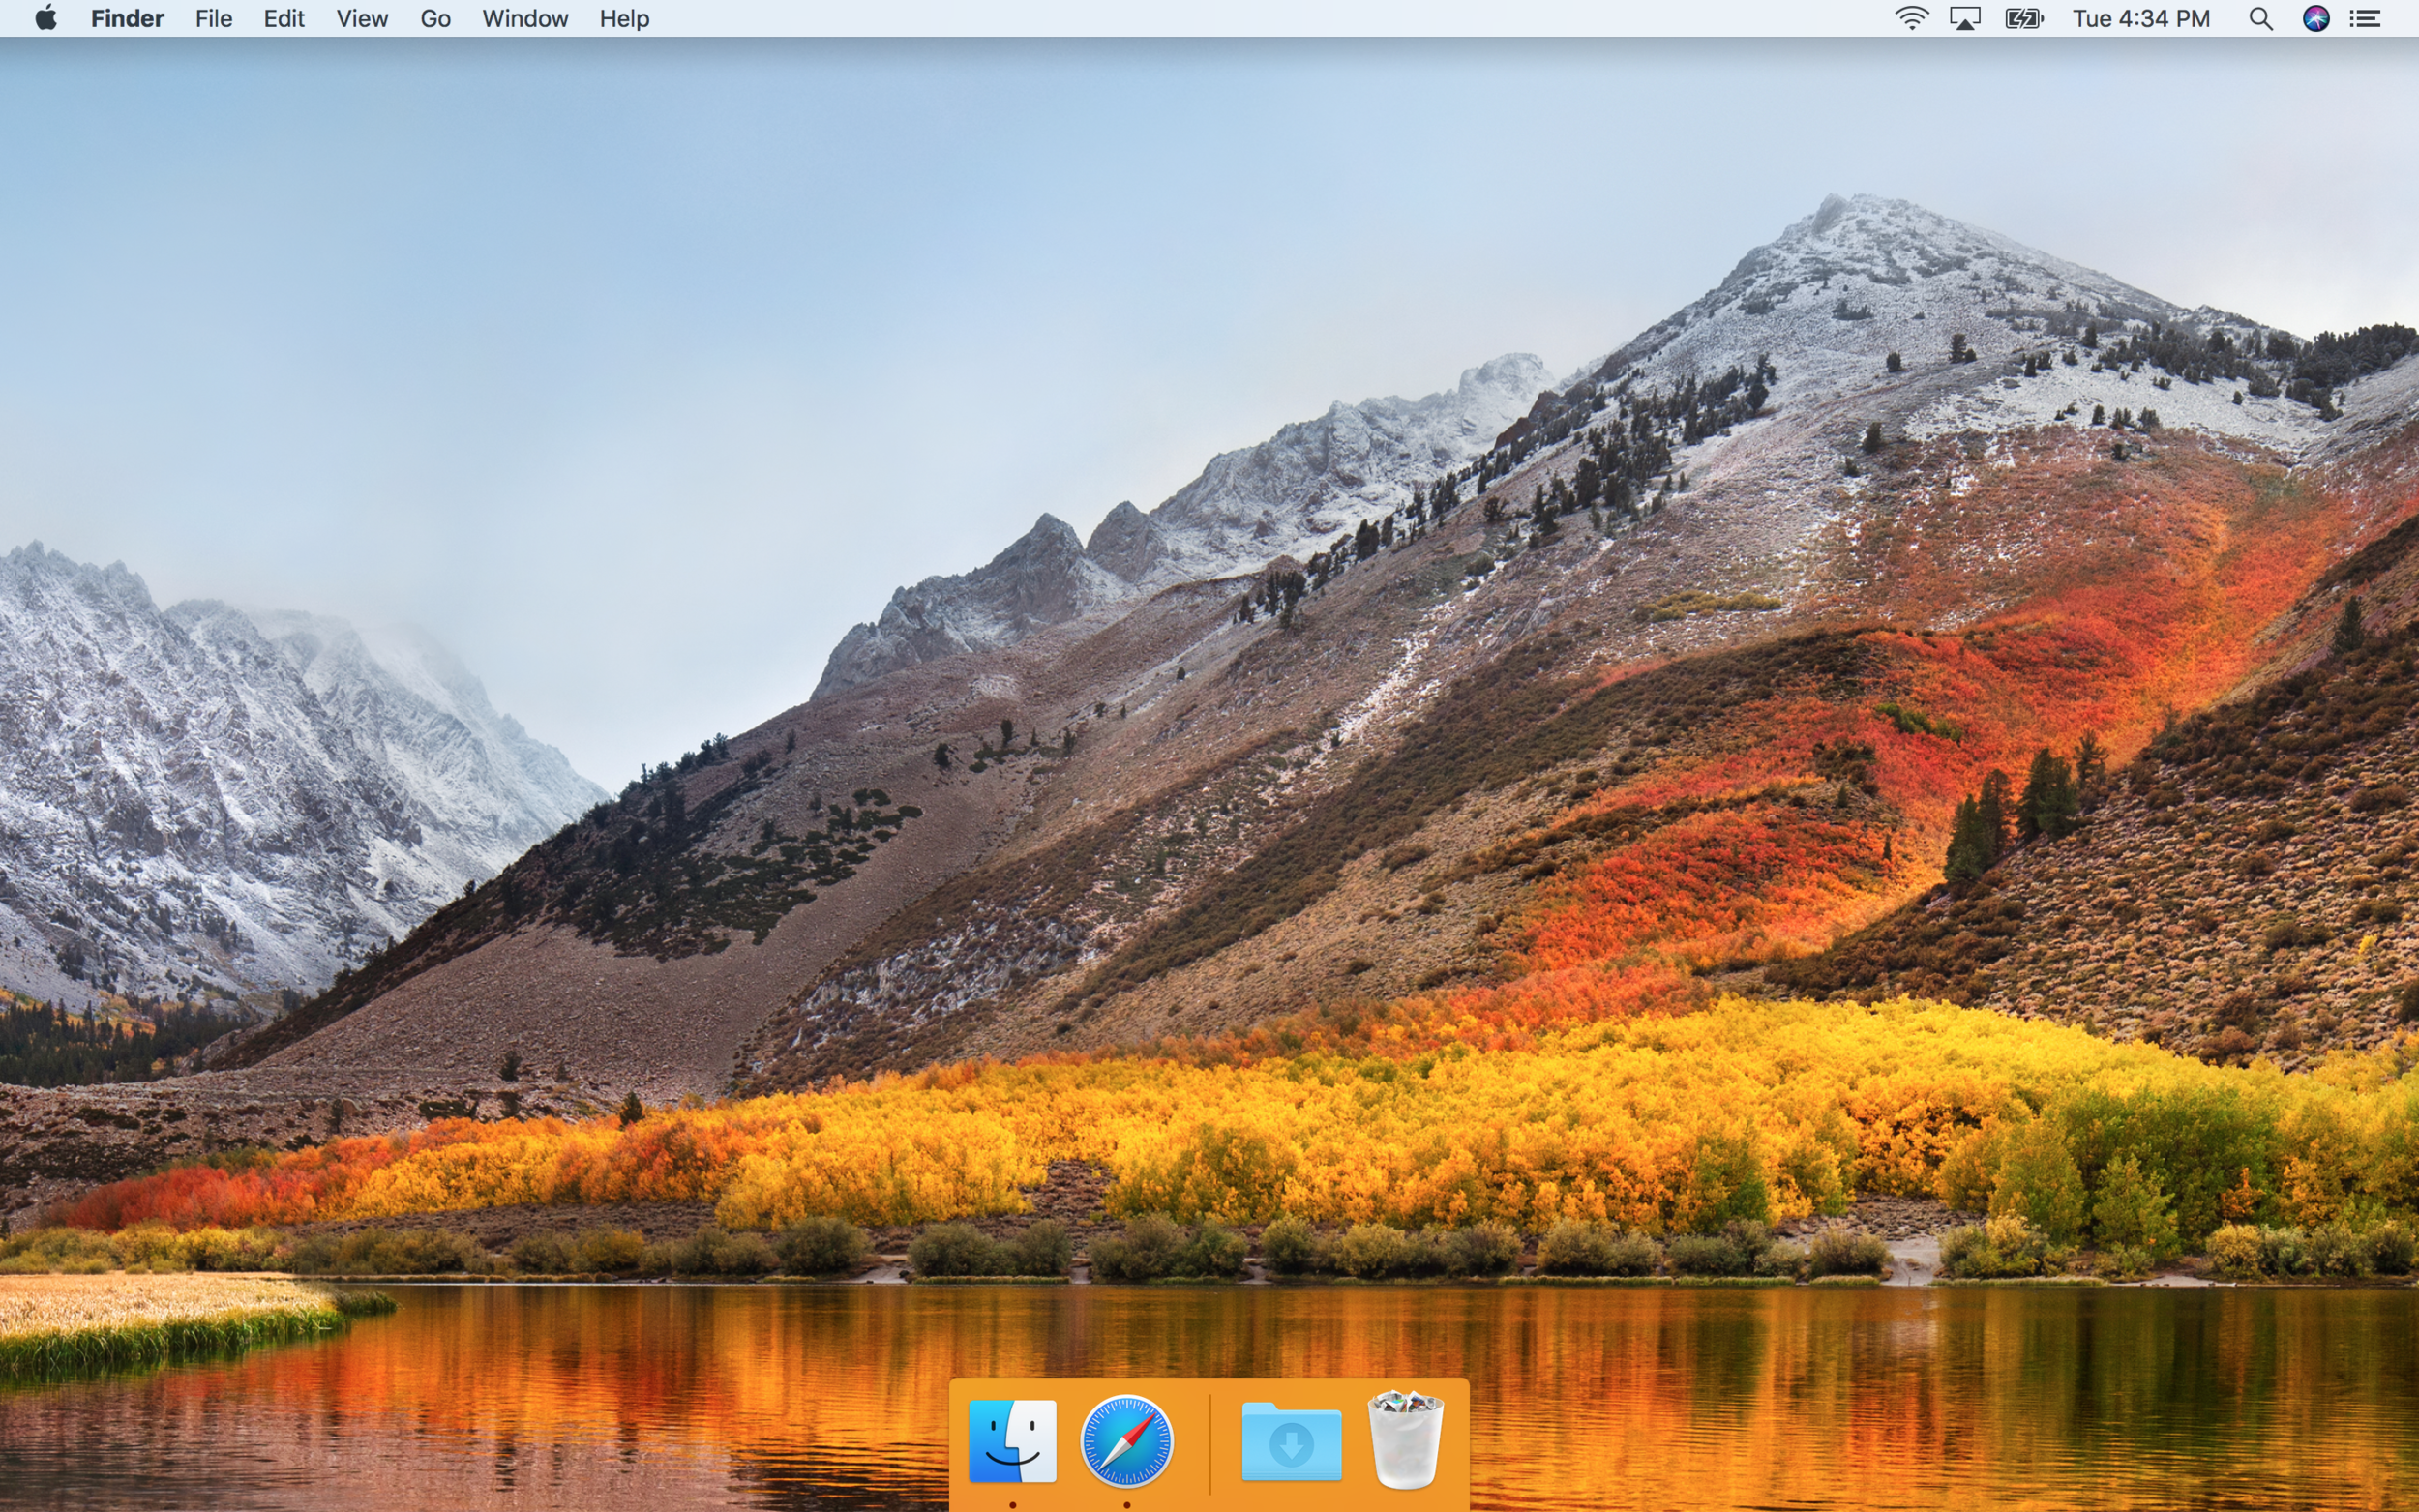 When you remove everything from your Dock, you can always see exactly what Apps are open.